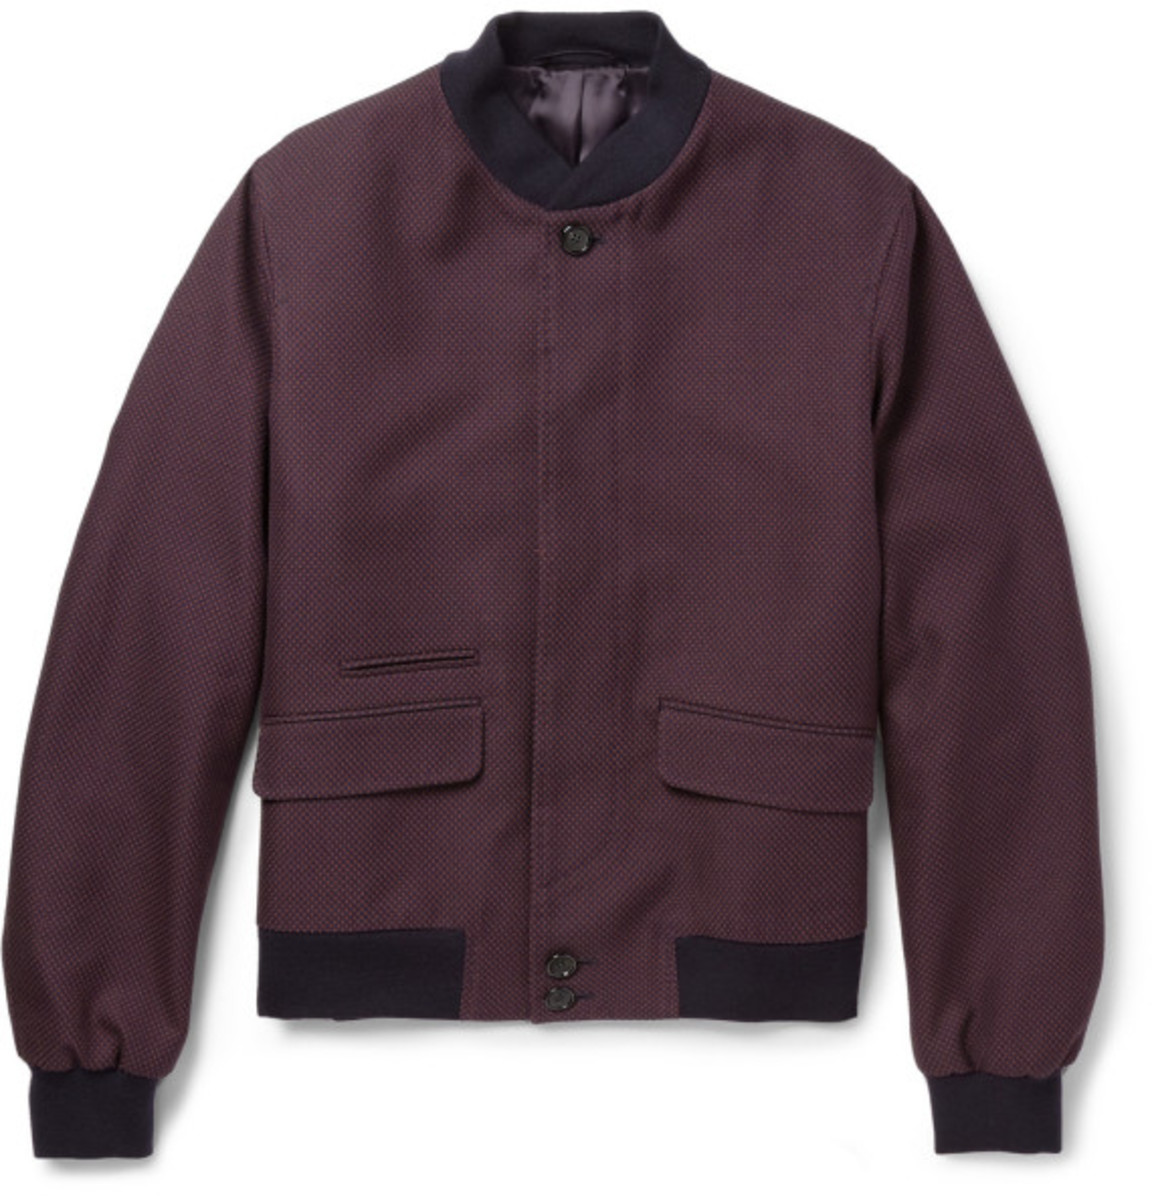 Spring 2014 Trends - Top 10 Bomber Jackets Available Now - 22